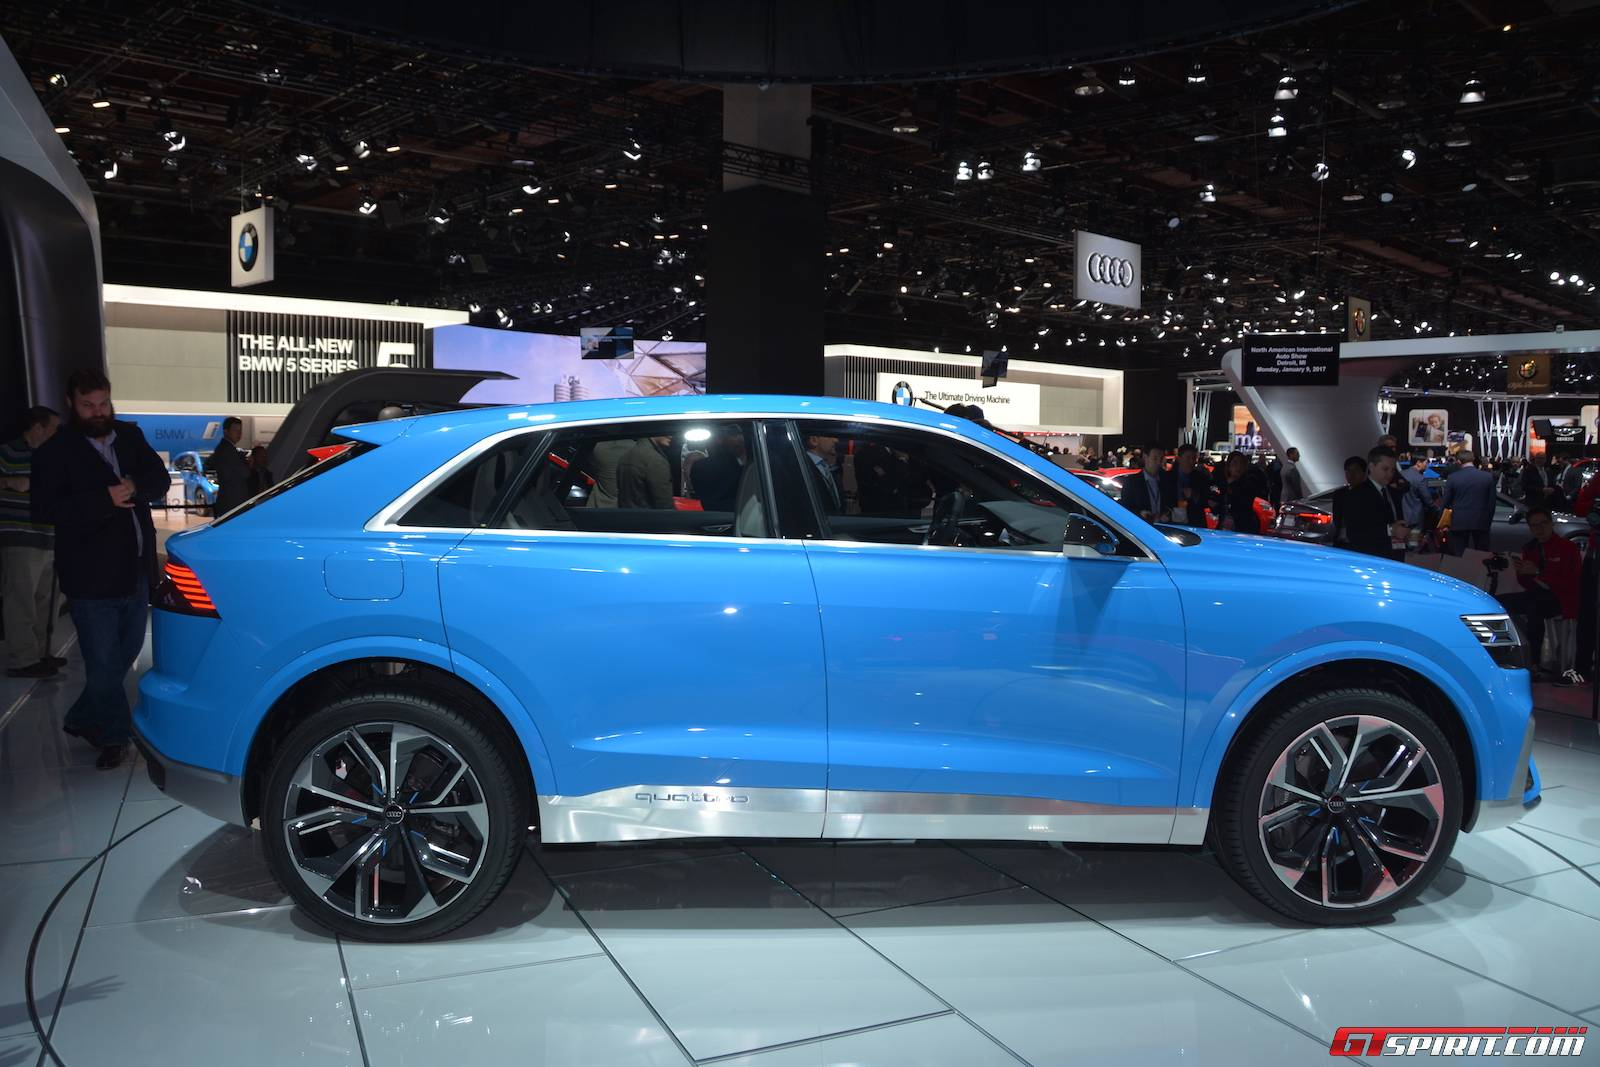 Article additionally 2018 Honda Civic Hybrid besides Volkswagen Introduces New Sport Coupe Concept Gte as well Detroit 2017 Audi Q8 Concept likewise Teco Electric AC Motor ALAA 0080M2 10004 IO. on high hp electric motor